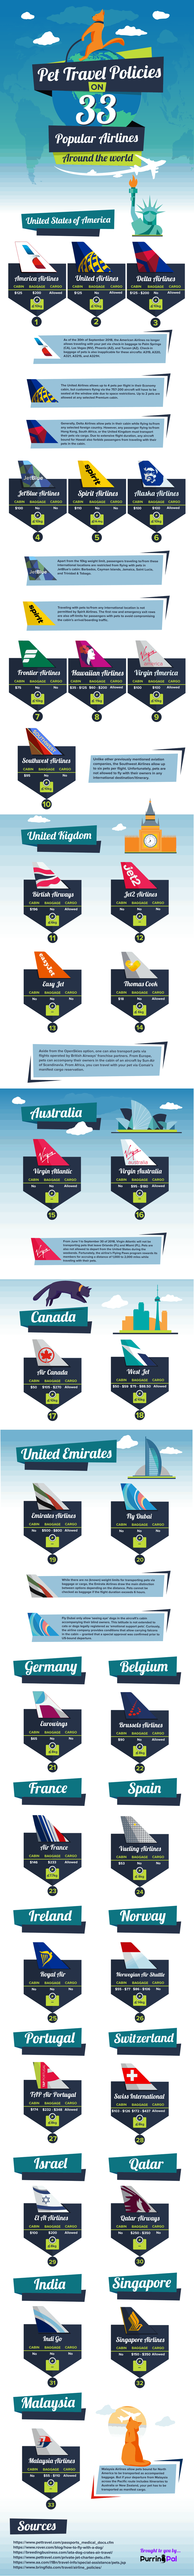 Pet travel rates in airlines